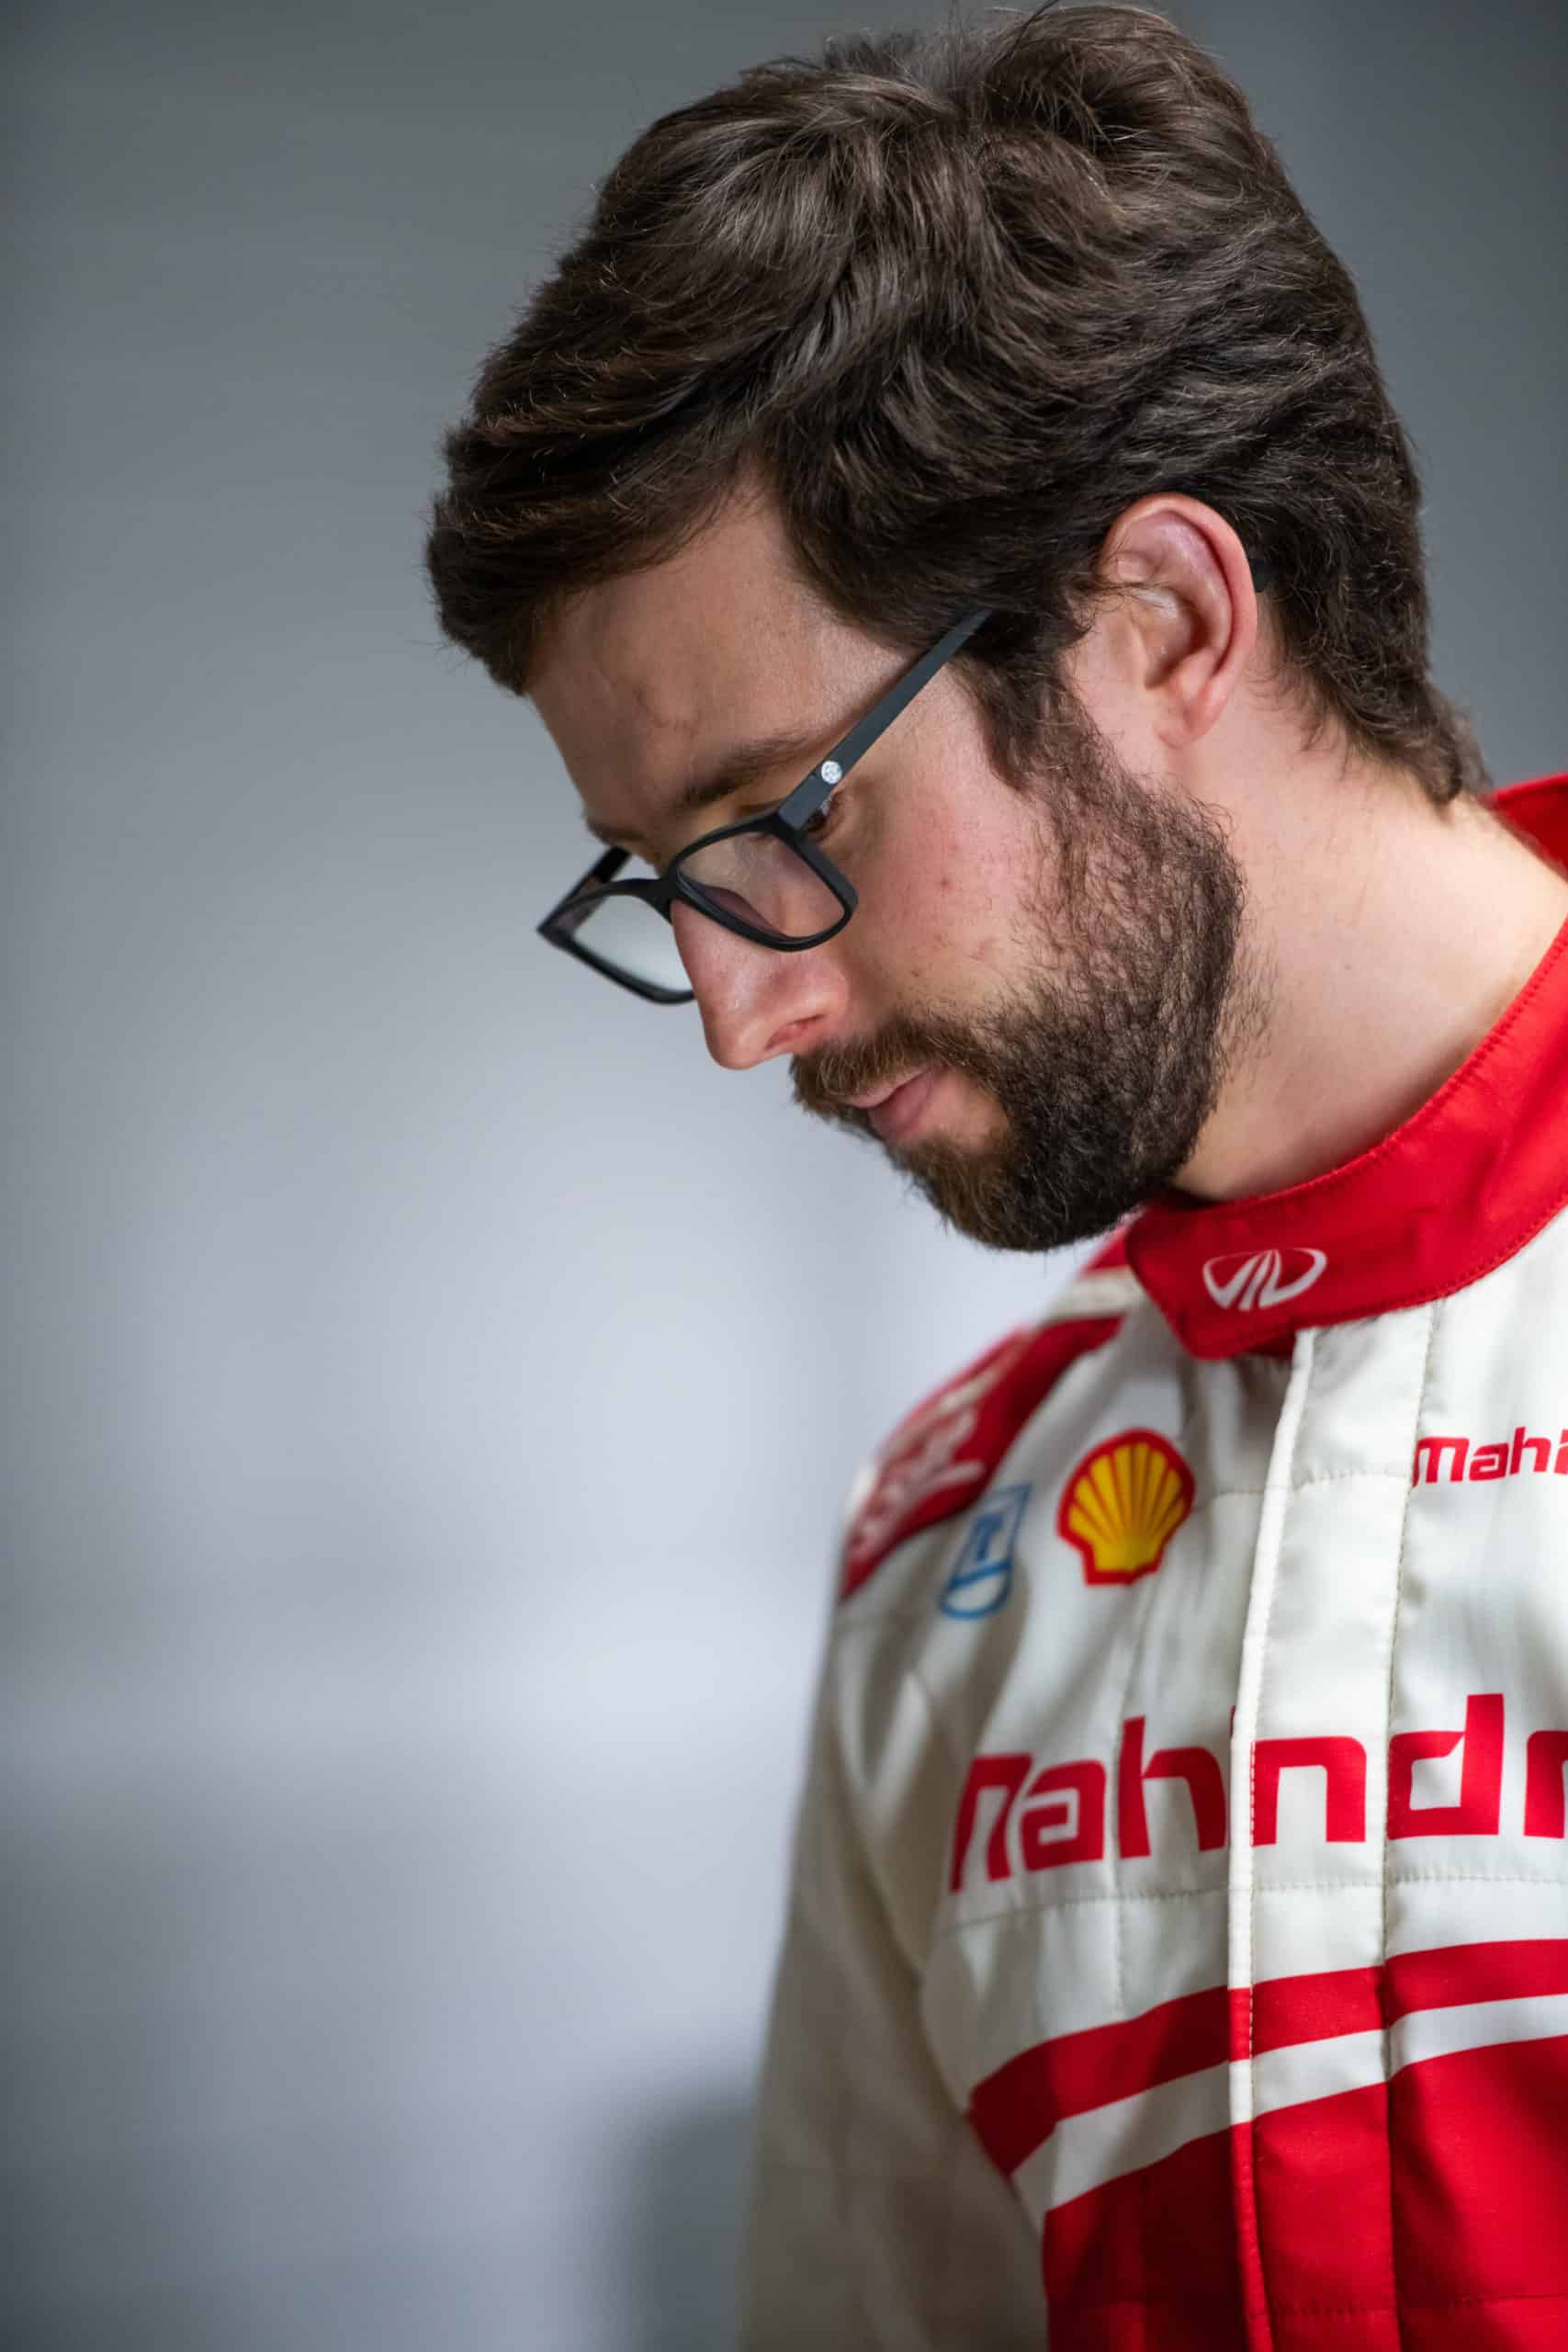 | Driver: Alexander Sims| Team: Mahindra Racing| Number: 29| Car: Mahindra M7Electro|Car: Spark SRT05e| | Photographer: Lou Johnson| Event: Preseason Testing| Circuit: Circuit Ricardo Tormo| Location: Valencia| Series: FIA Formula E| Season: 2020-2021| Country: Spain| Keyword: Season 7| Keyword: Season Seven| Keyword: S7| Keyword: motorsport| Keyword: electric racing| Keyword: single seater| Keyword: open wheel| Keyword: 2020| | Team: Mahindra Racing| Car: Mahindra M7Electro|Car: Spark SRT05e| | Keyword: Pitlane| Keyword: Pit Lane| | Session: afternoon|